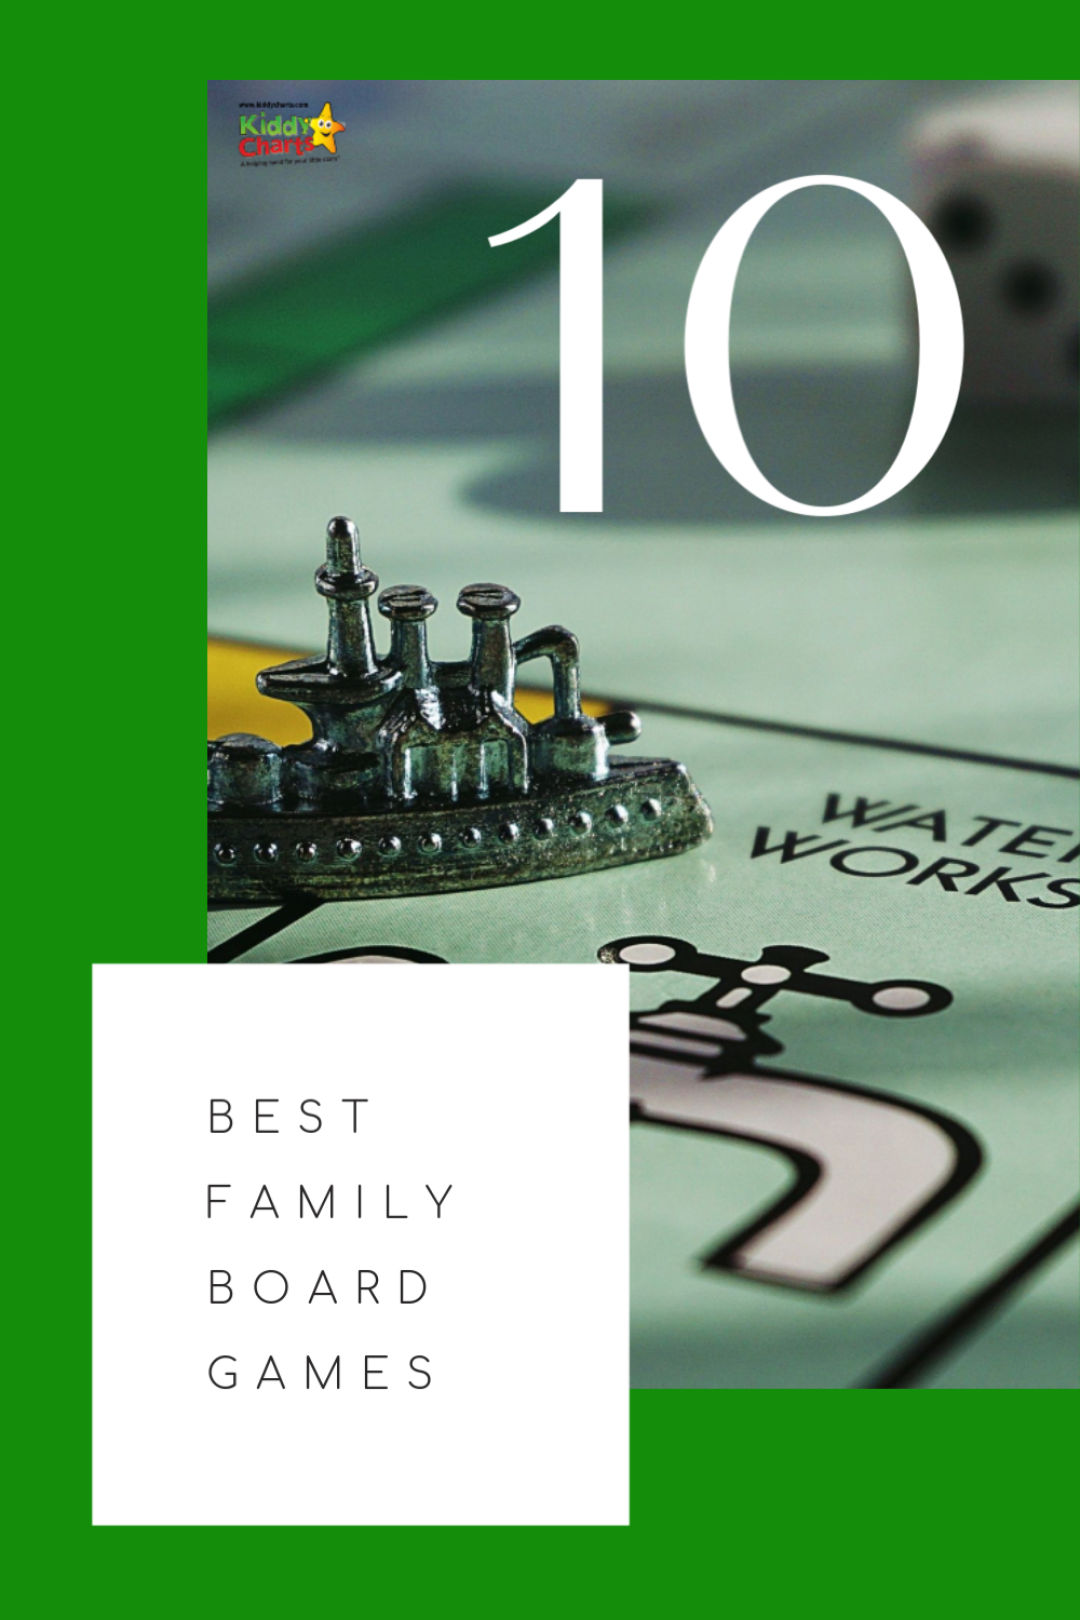 We have put together our favourite top ten best board games for family fun, so that you and yours will never be bored again!